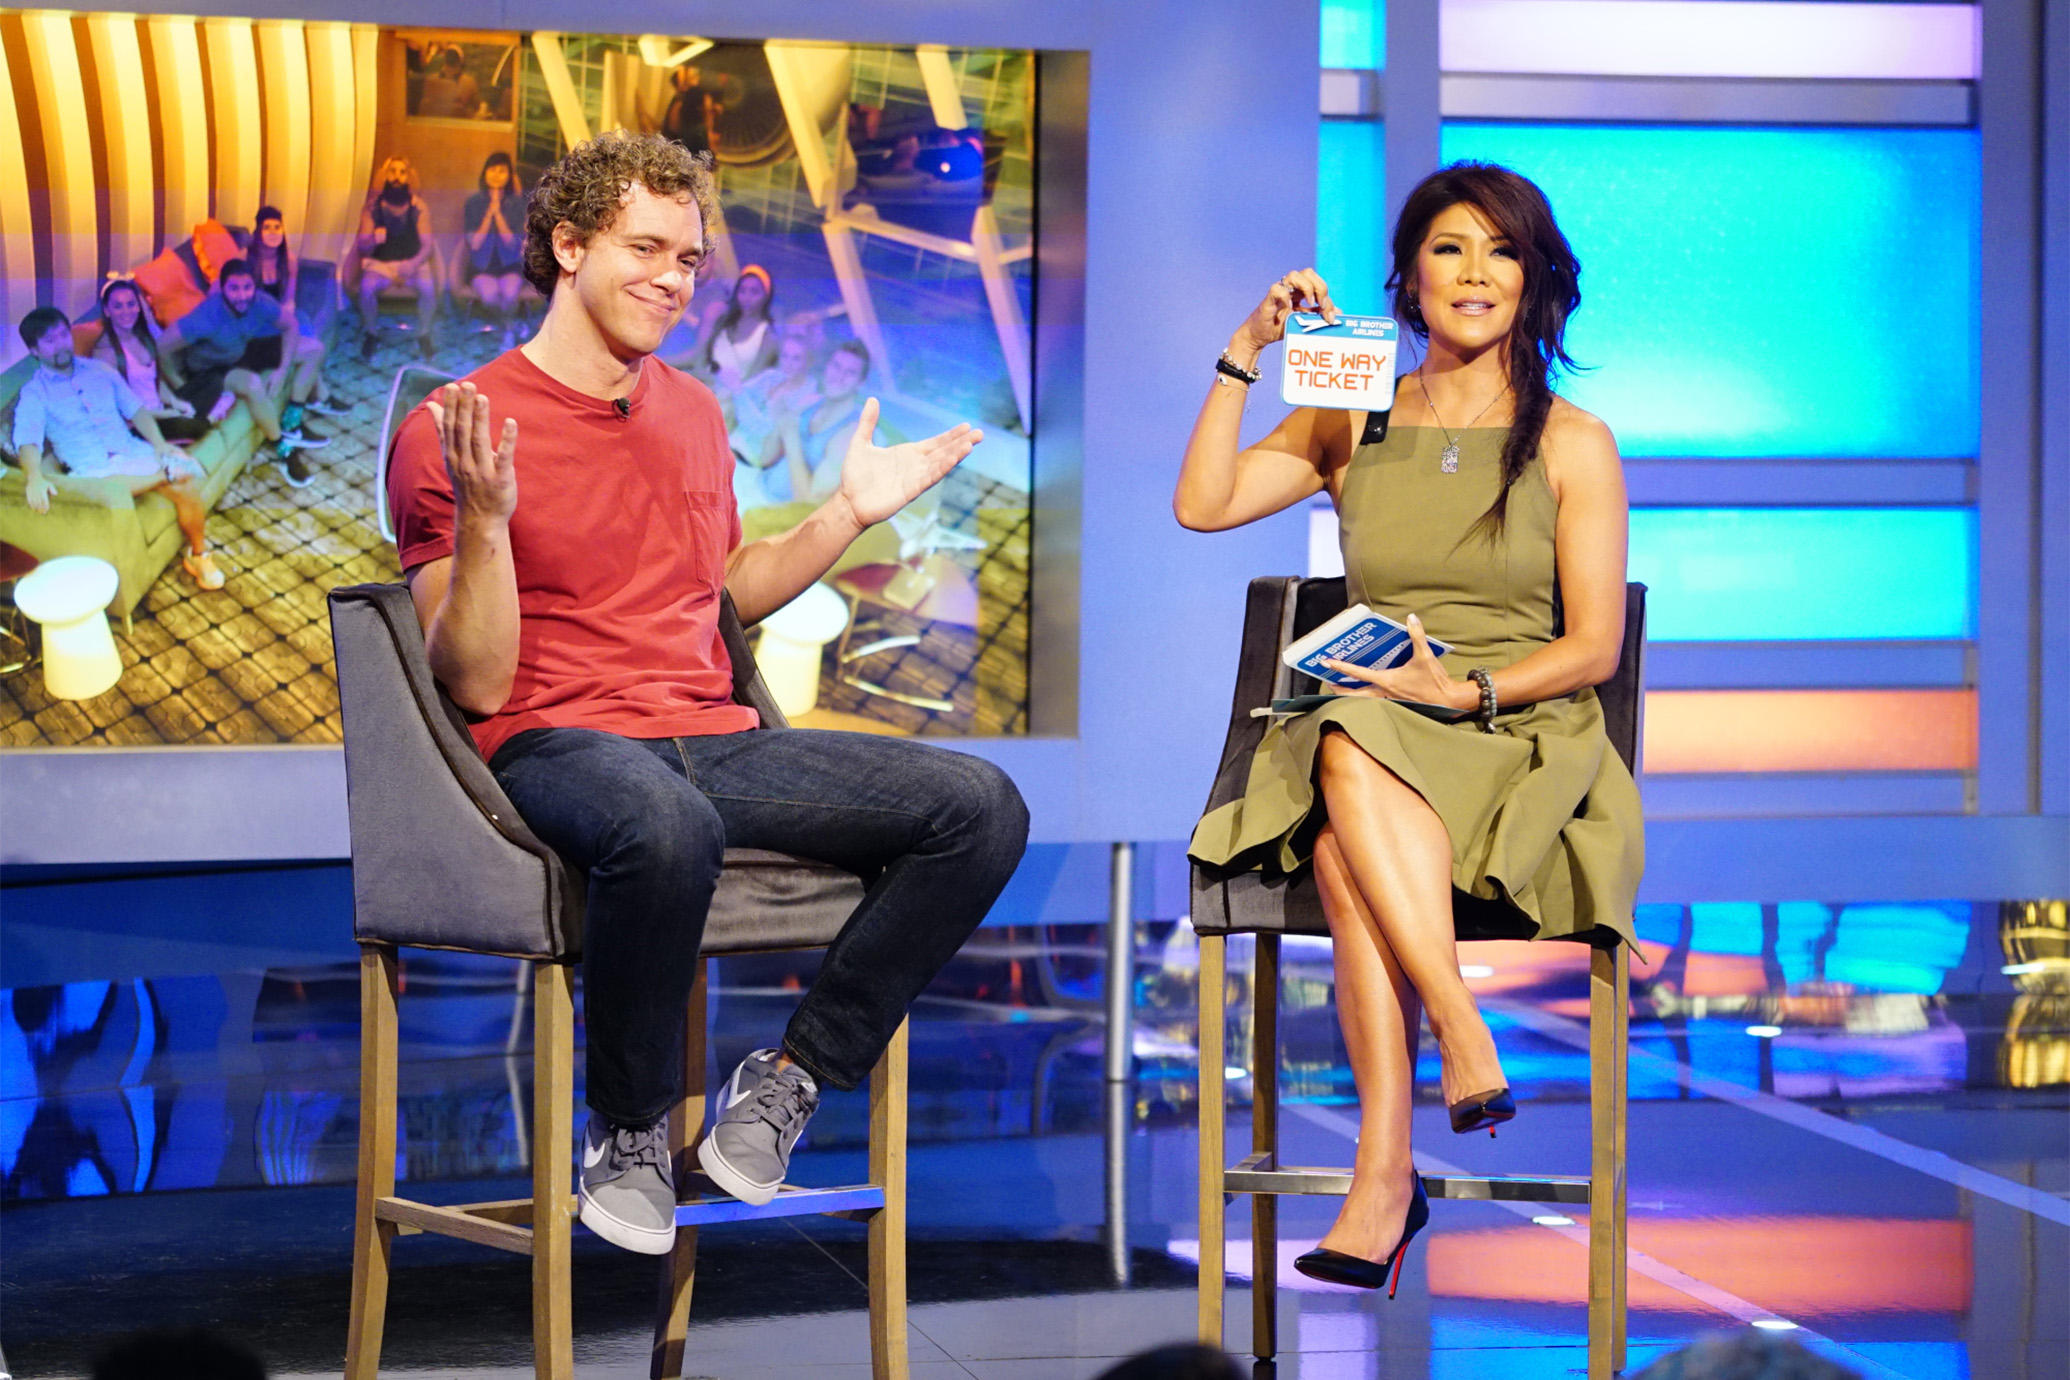 Frank and Julie Chen, Big Brother 18